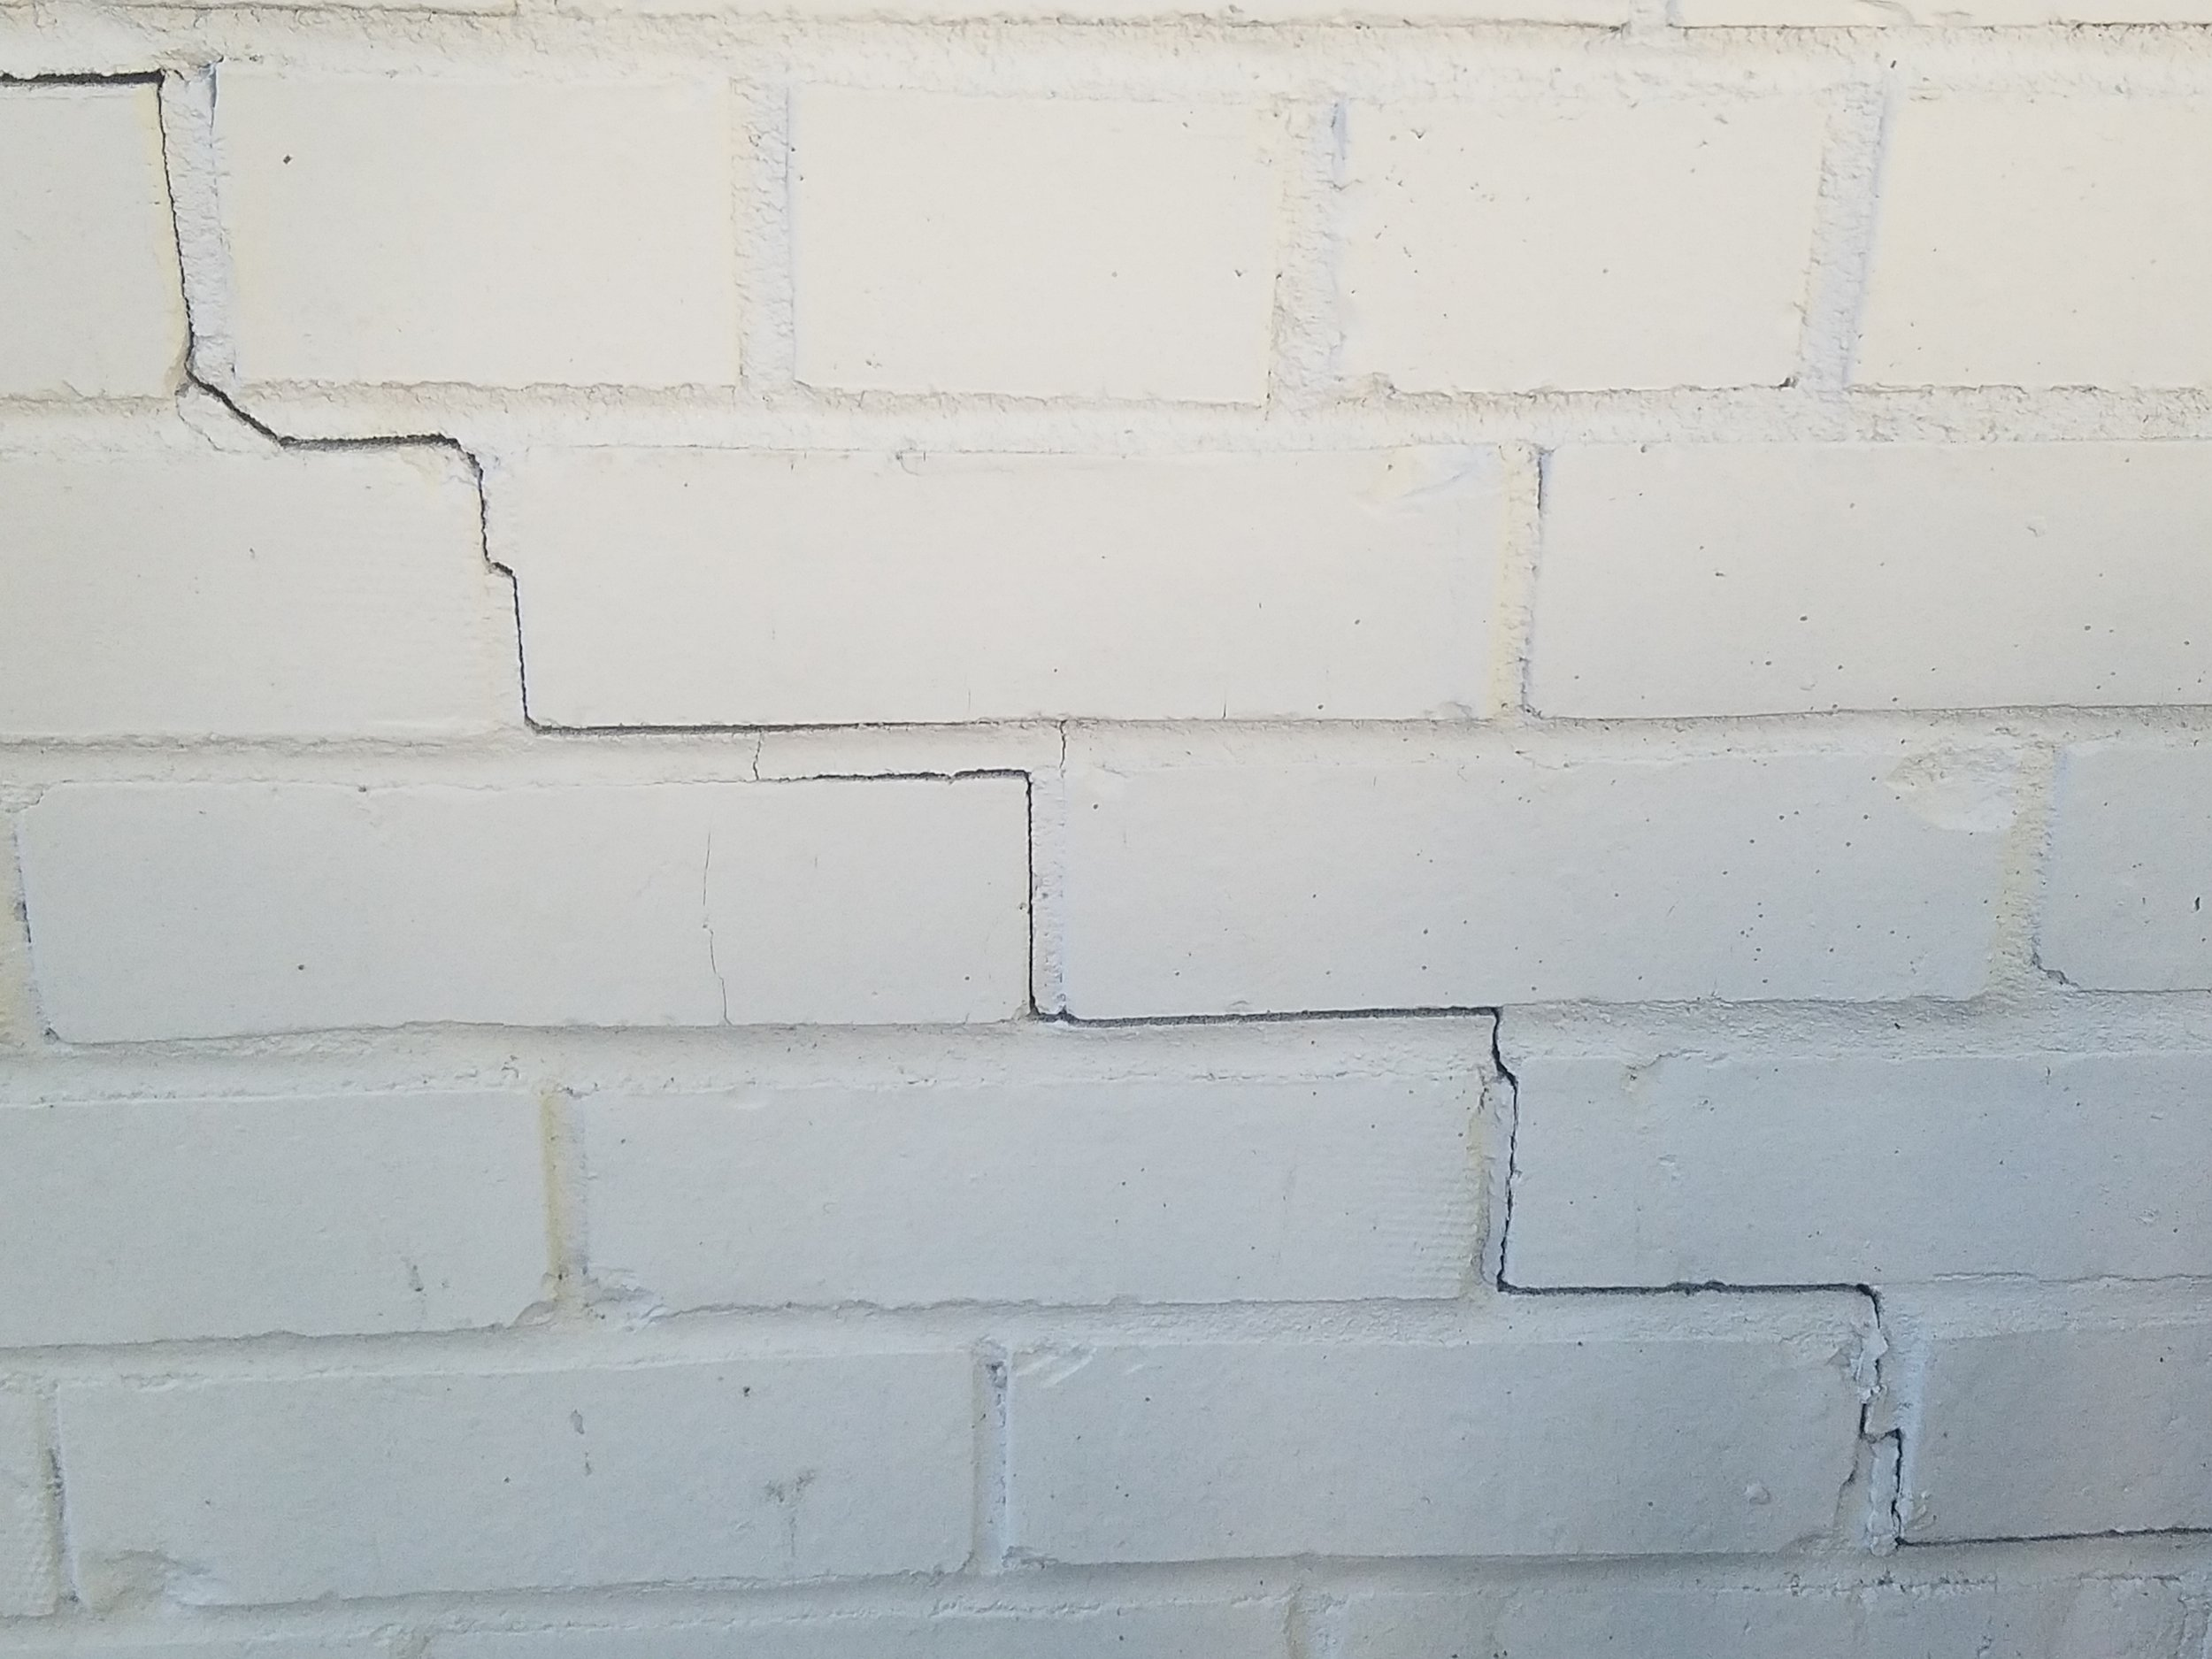 foundation crack 6.jpg